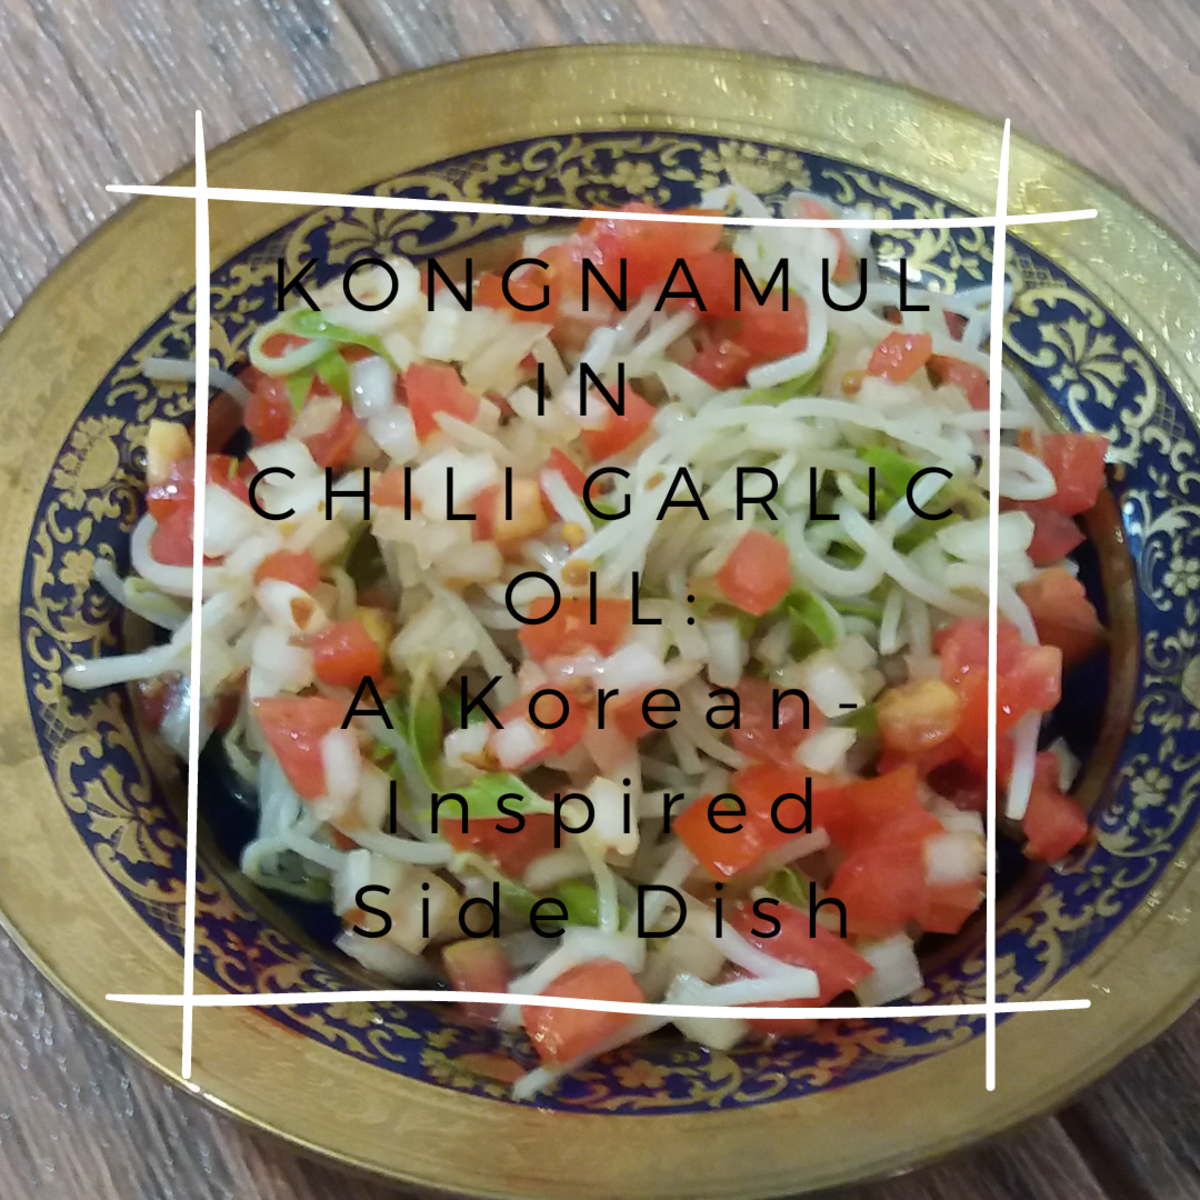 Kongnamul in Chili Garlic Oil: A Korean-Inspired Side Dish